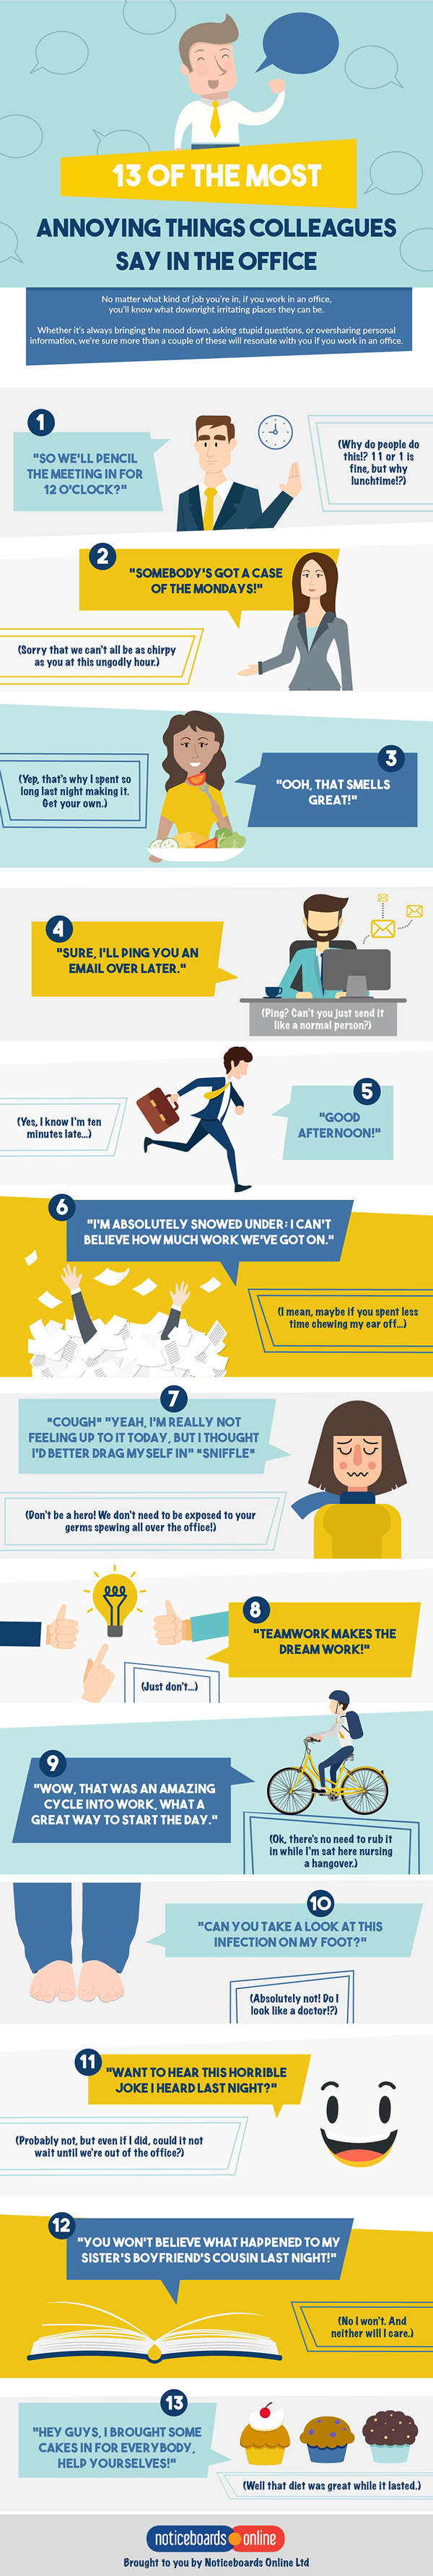 Annoying Things Colleagues Say In The Office